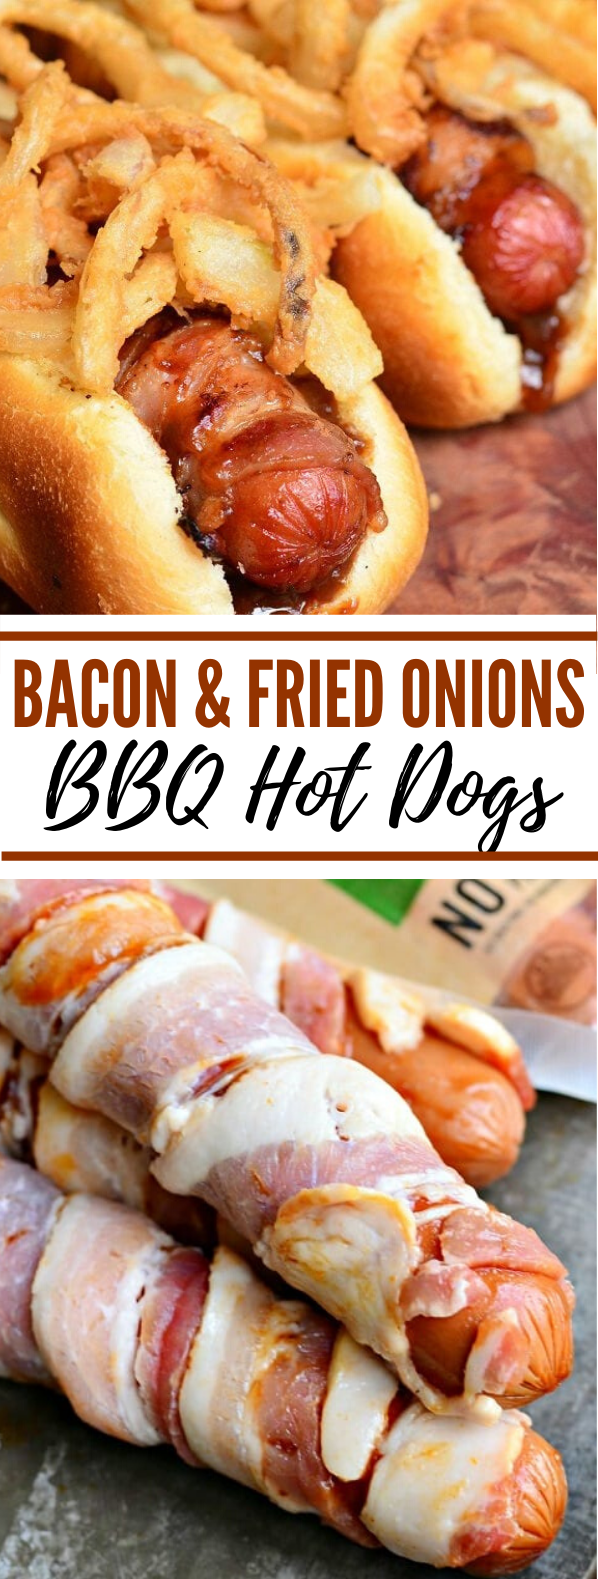 Bacon and Fried Onions BBQ Hot Dogs #lunch #comfortfood